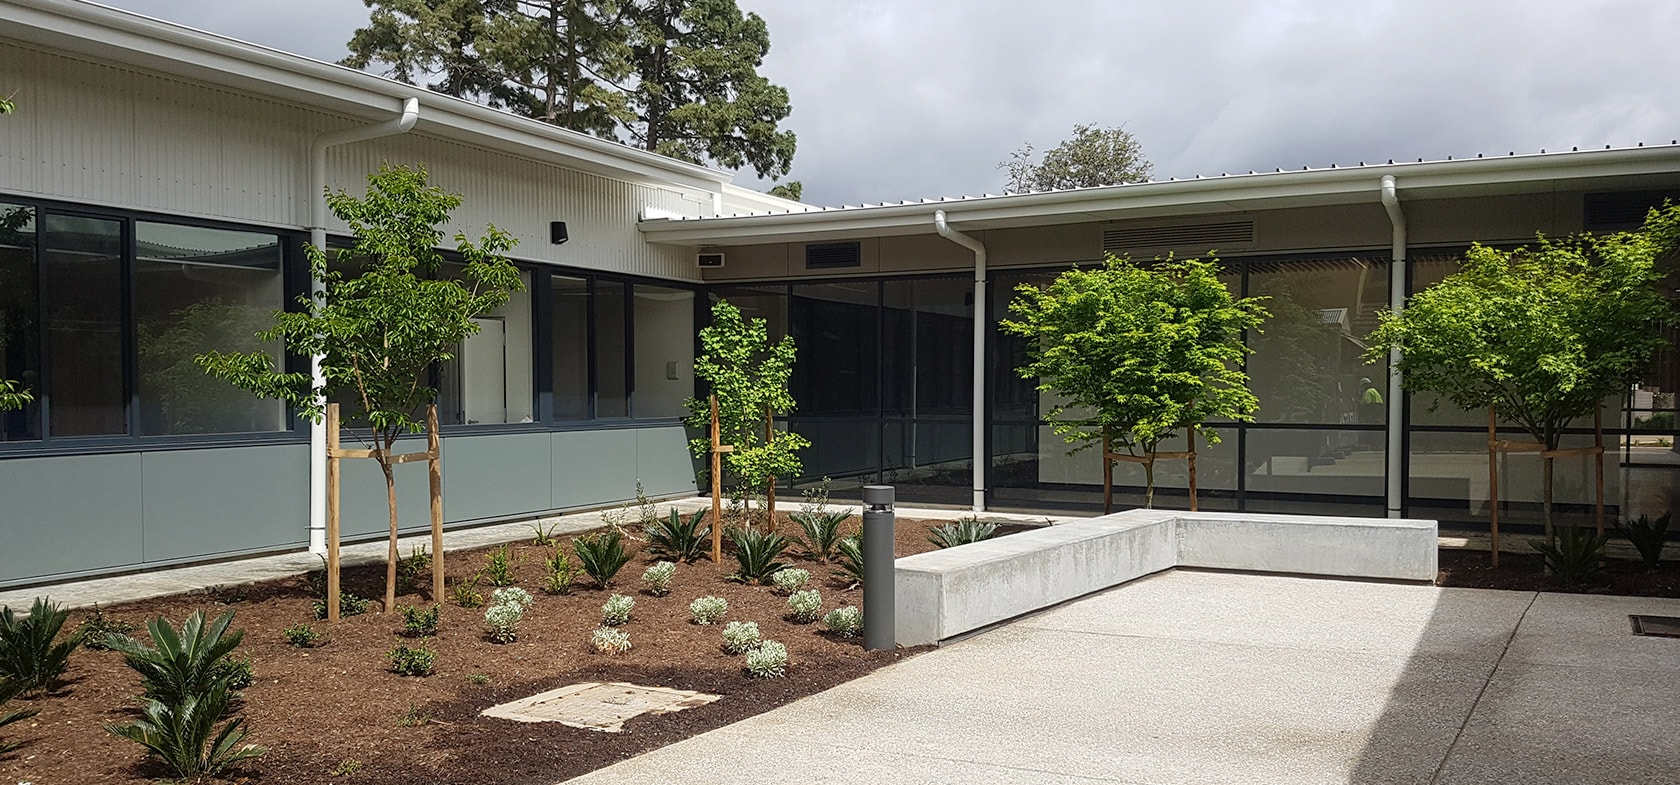 The Jamie Larcombe Centre External Veterans Mental Health Precinct